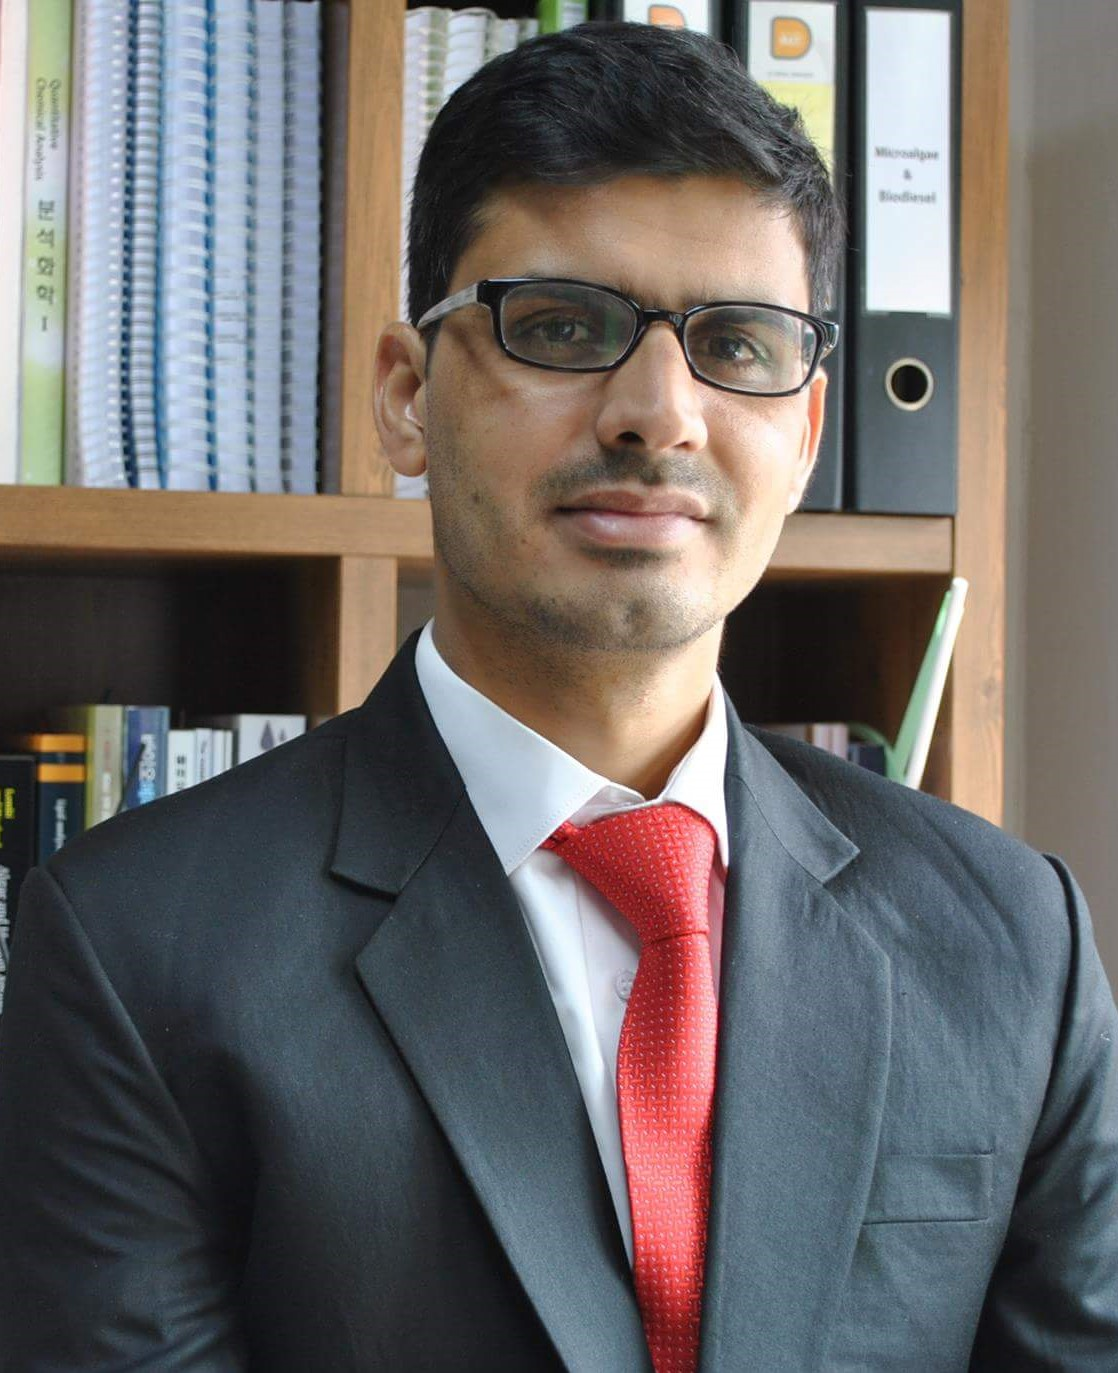 Dr. Ghulam Mujtaba